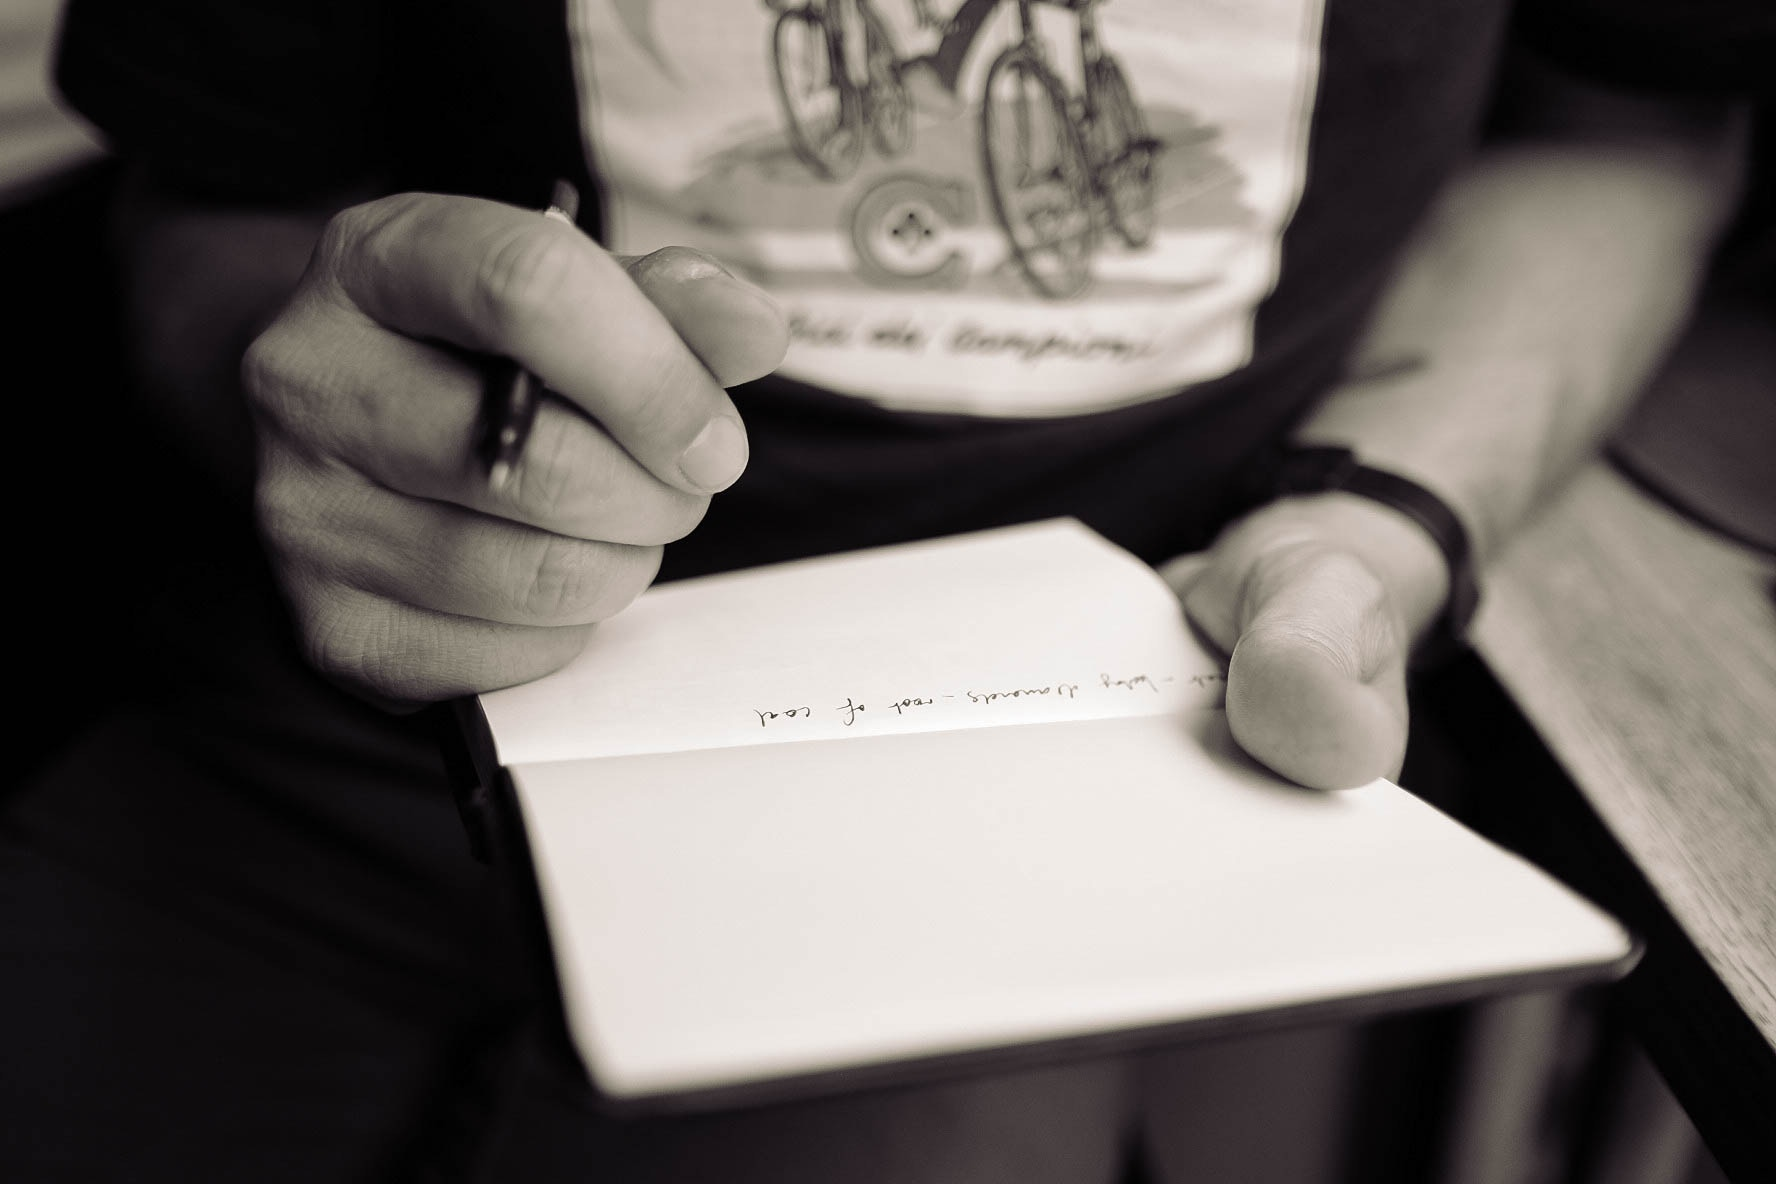 A woman's hands writing in a notebook.